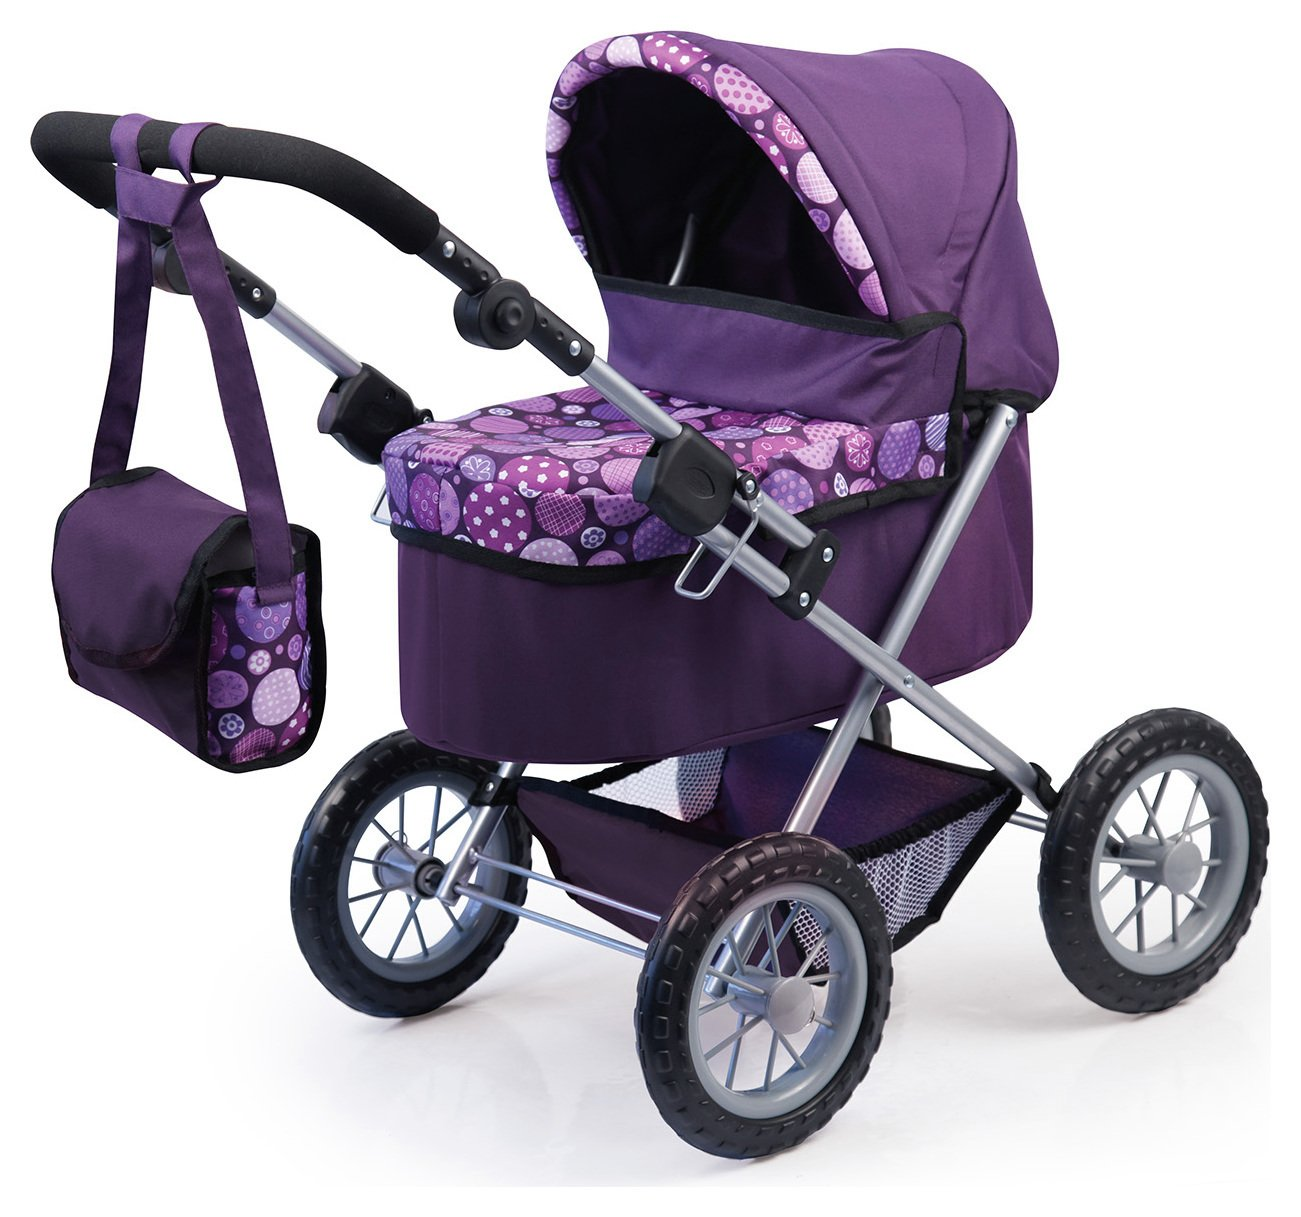 bayer-dolls-pram-trendy-purple-patterned